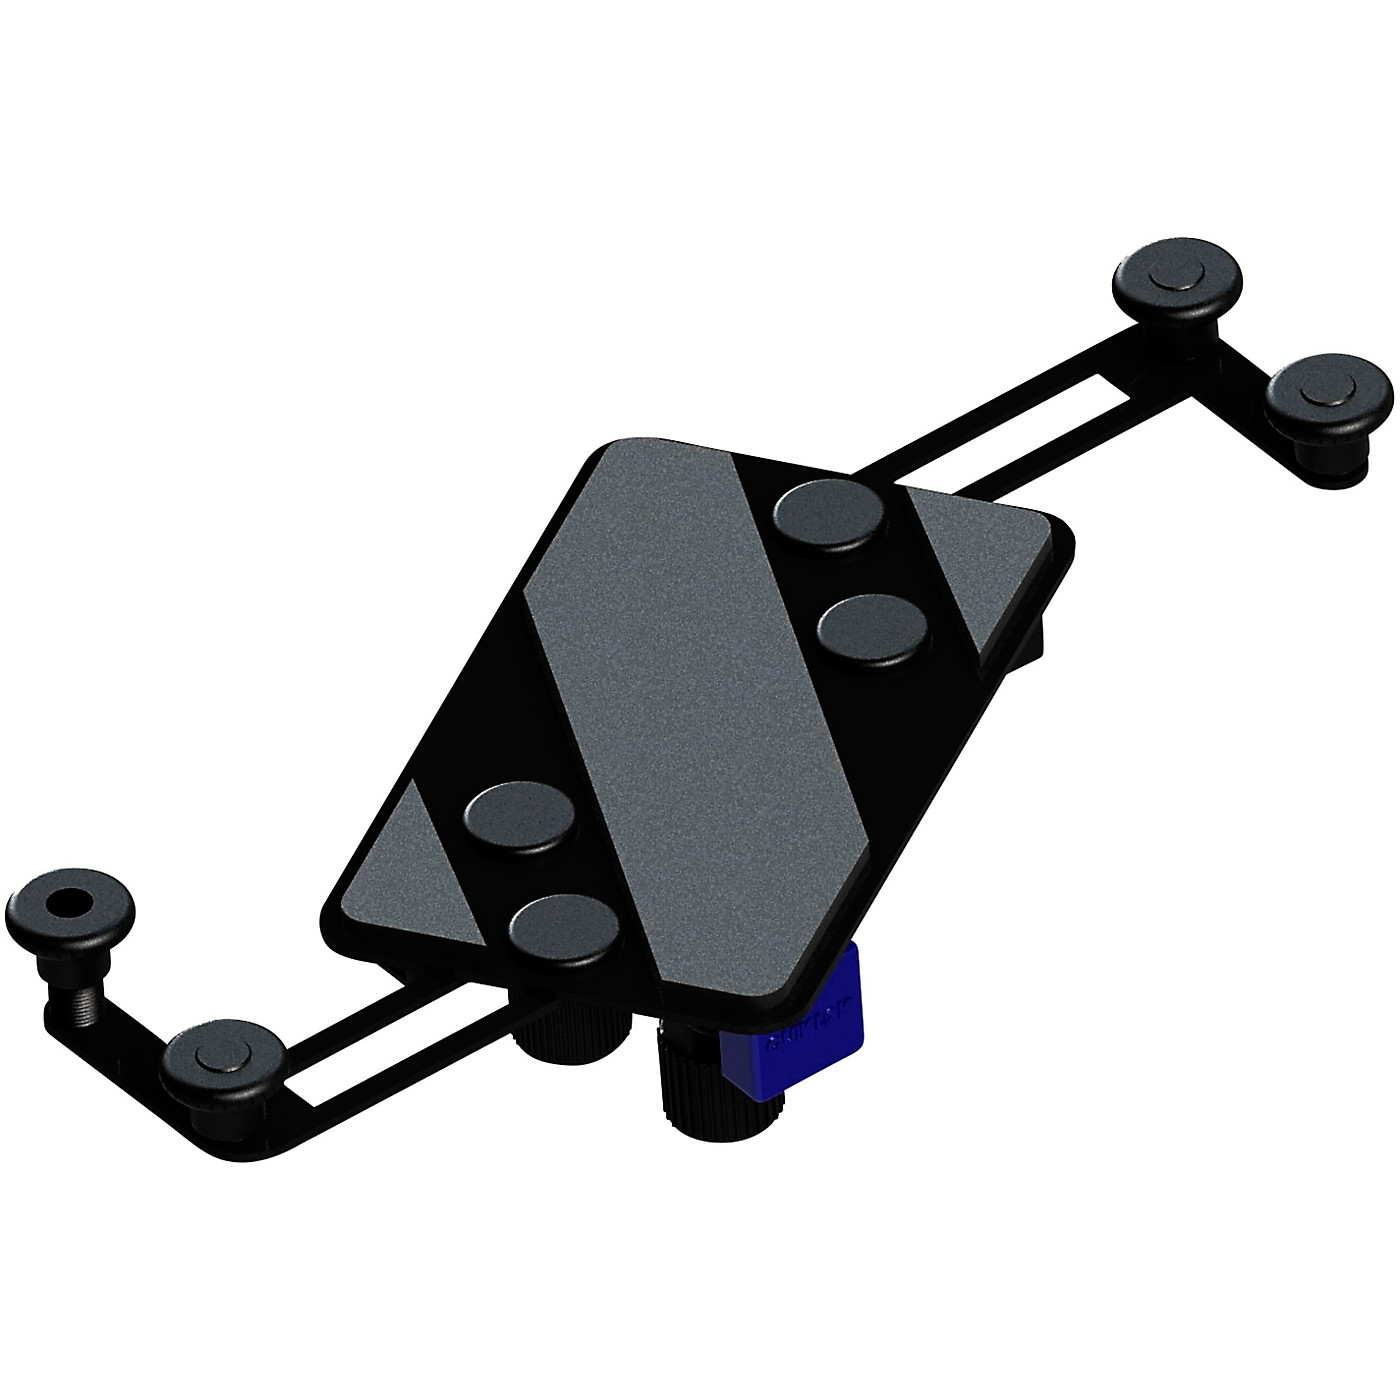 Quik-Lok Universal Tablet Holder for Side/Top Connection thumbnail